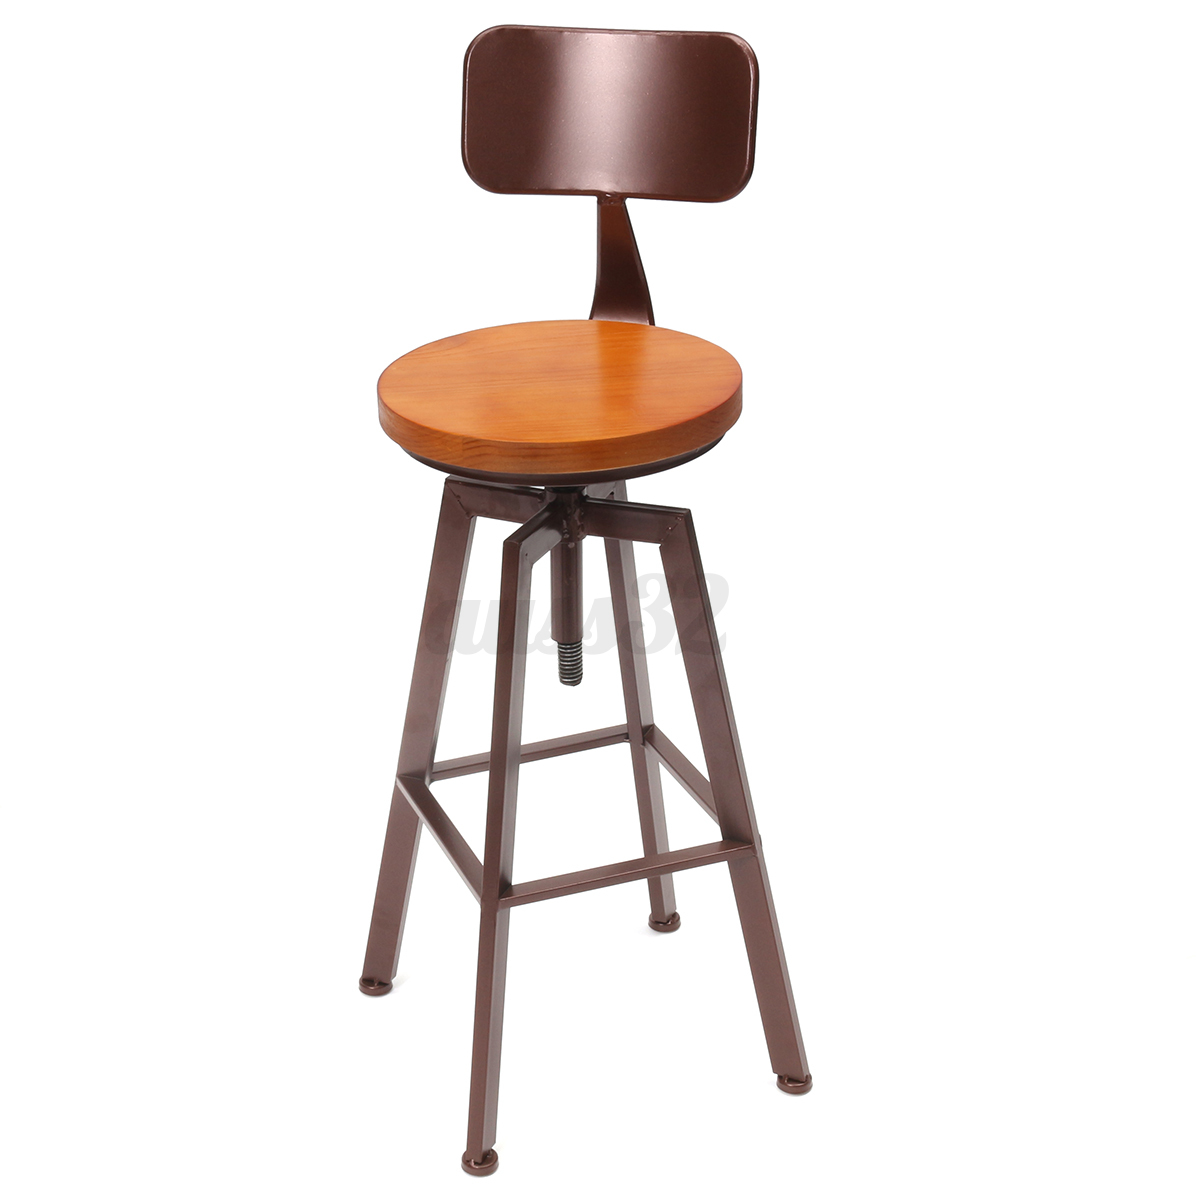 2 Types Industrial Rustic Retro Metal Bar Stool Breakfast Kitchen ...